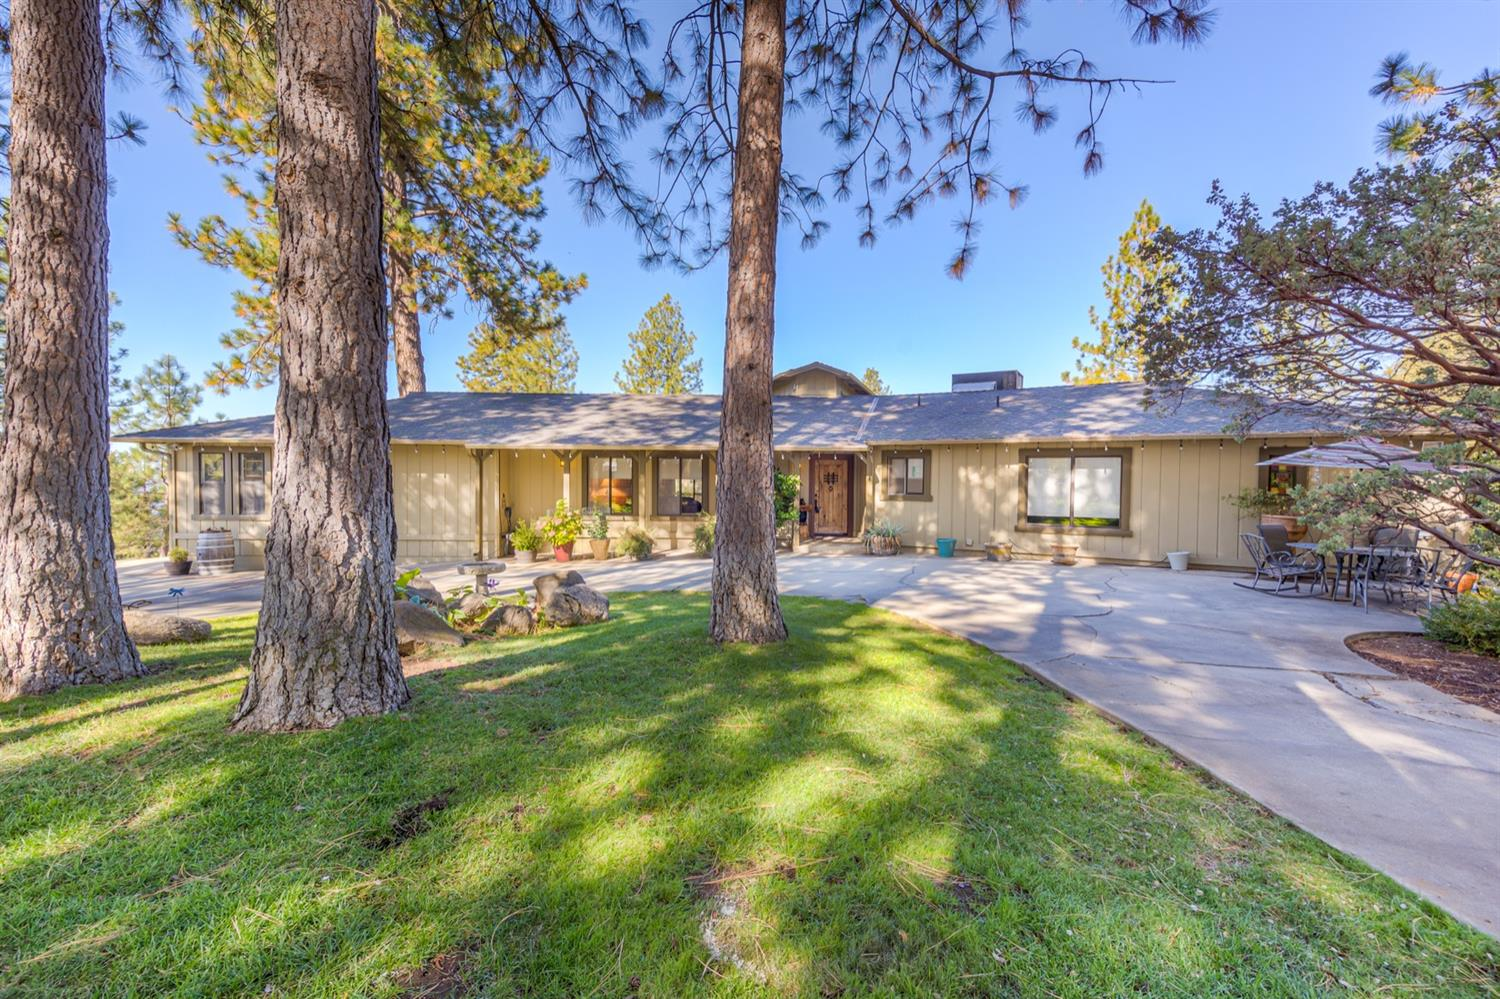 Photo of 52052 Road 426, Oakhurst, CA 93644